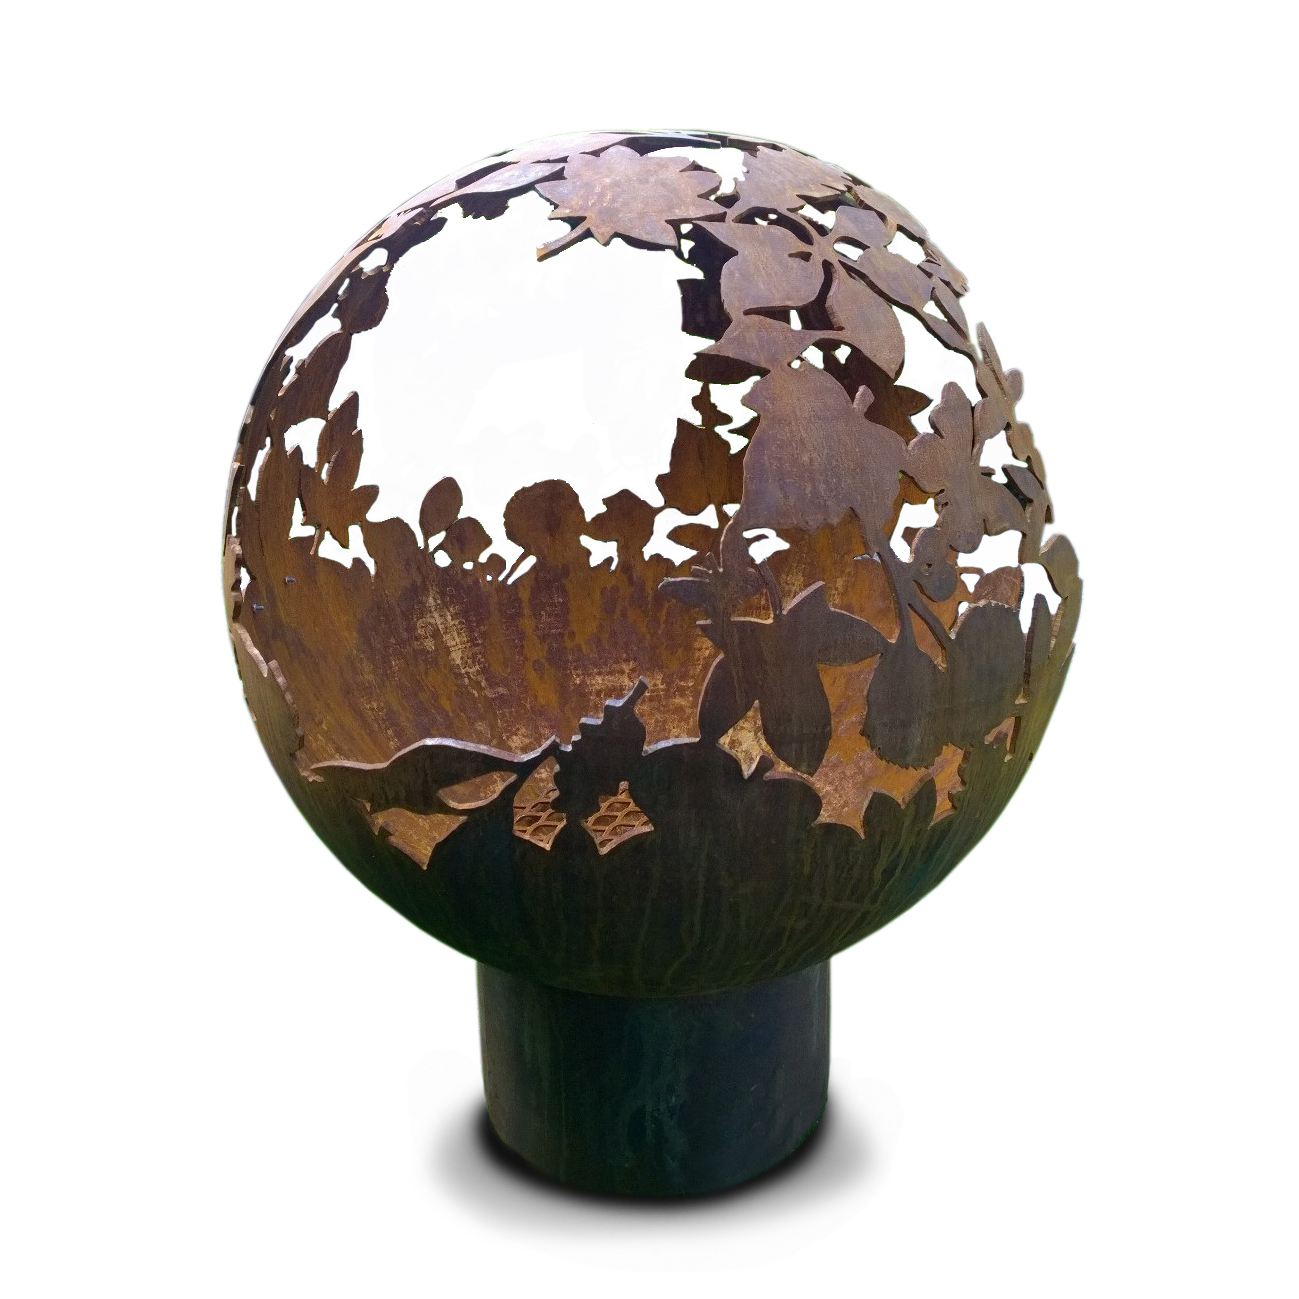 Fire Pits Uk Sale Part - 19: Our Bespoke Fire Spheres Are Made From Mild Steel Spun In The UK, Designed  By Ourselves And Hand Cut. Spheres Come With A Tubular Stand, Other Options  Are ...